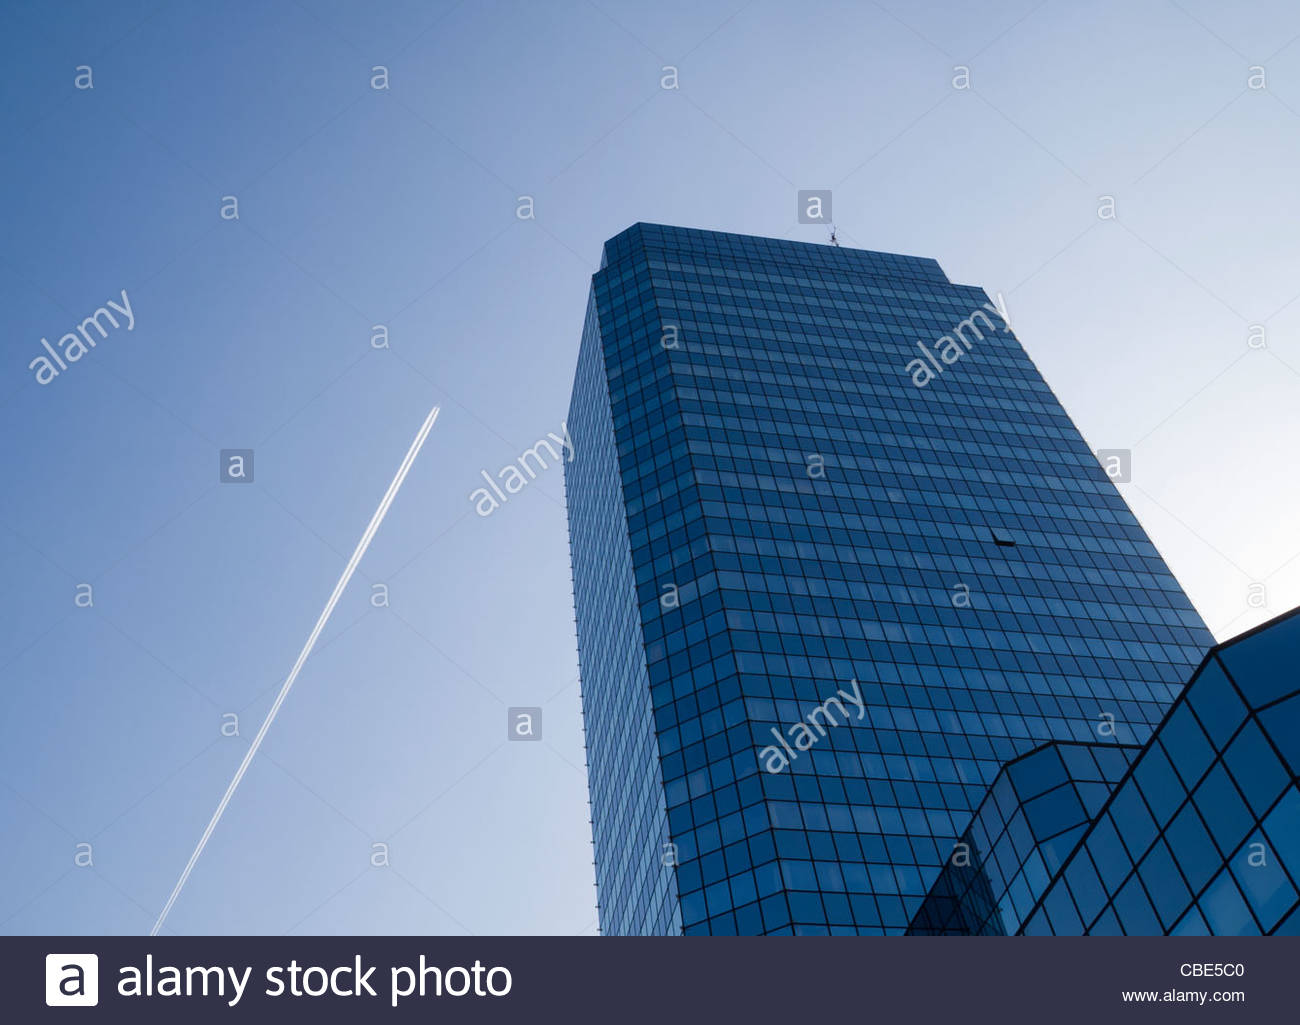 A blue glass office building pointing to the sky  while a jetliner passes by with a long trail - Stock Image